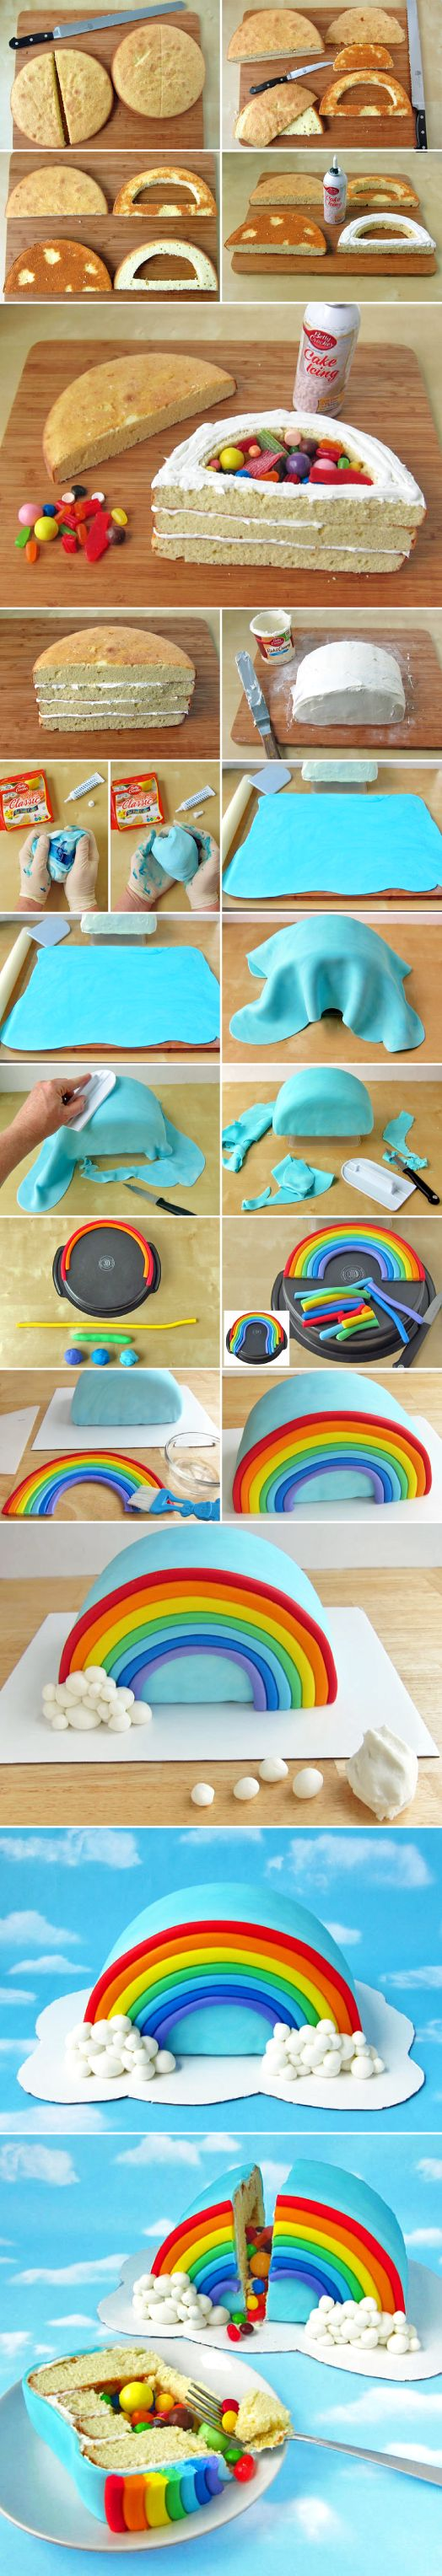 Rainbow-cake-sorpresa. I'm definitely gonna try this one for kins! she'd love skittles or jelly beans inside!